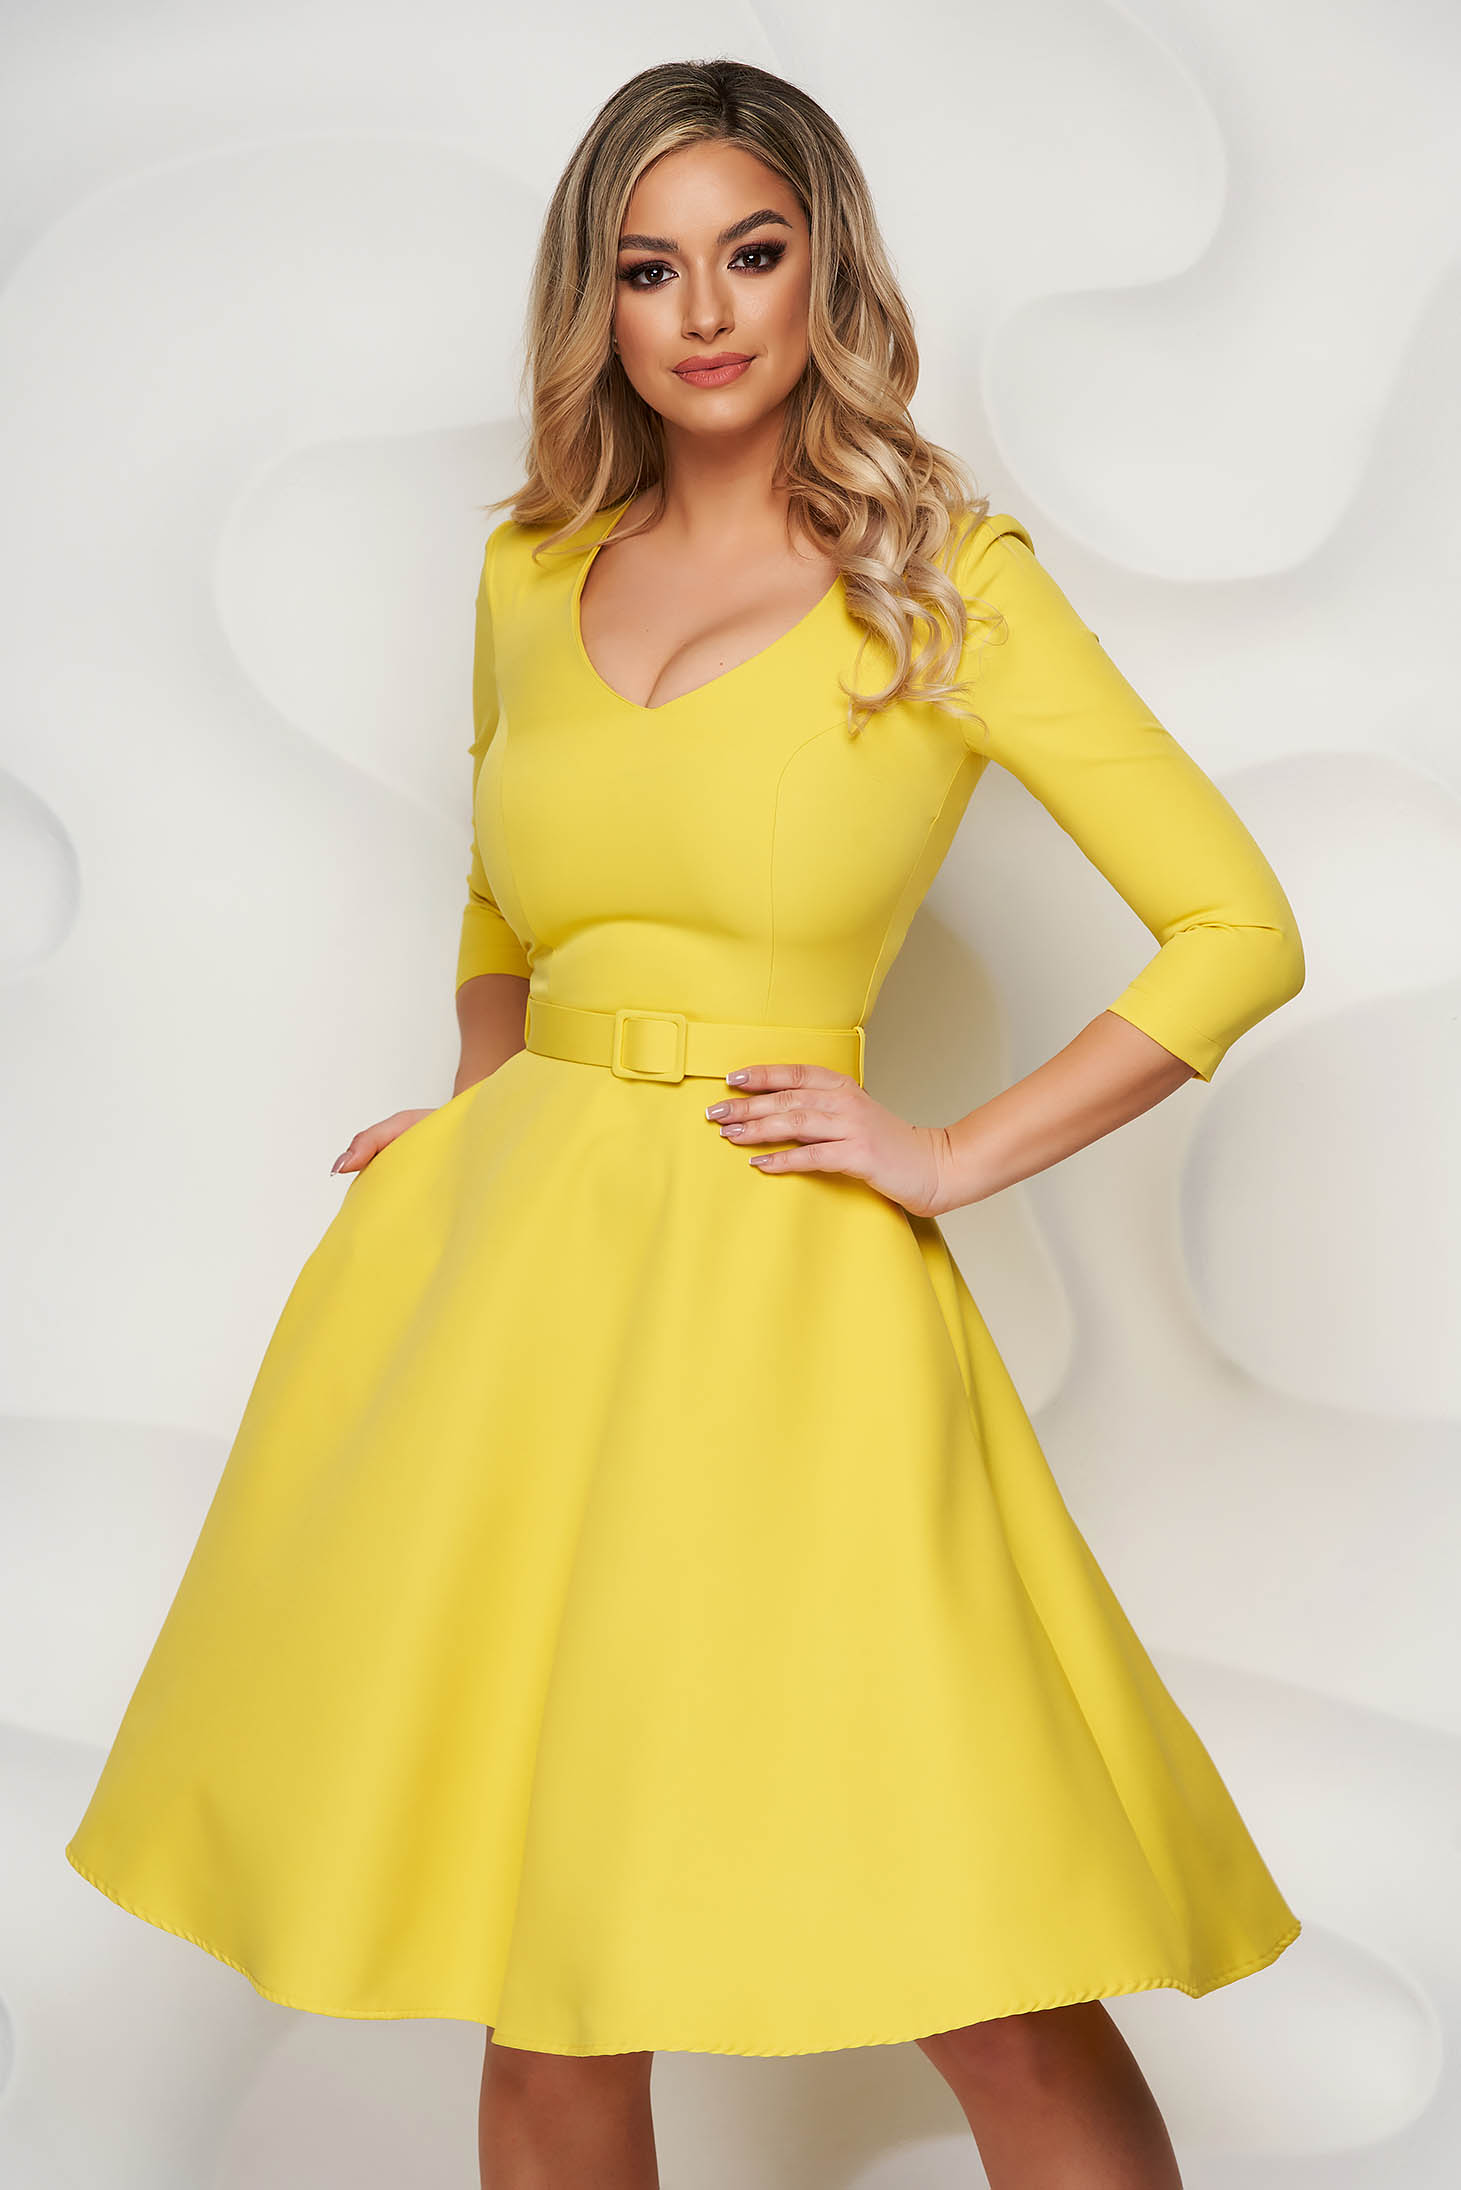 StarShinerS yellow dress office cloche slightly elastic fabric accessorized with belt